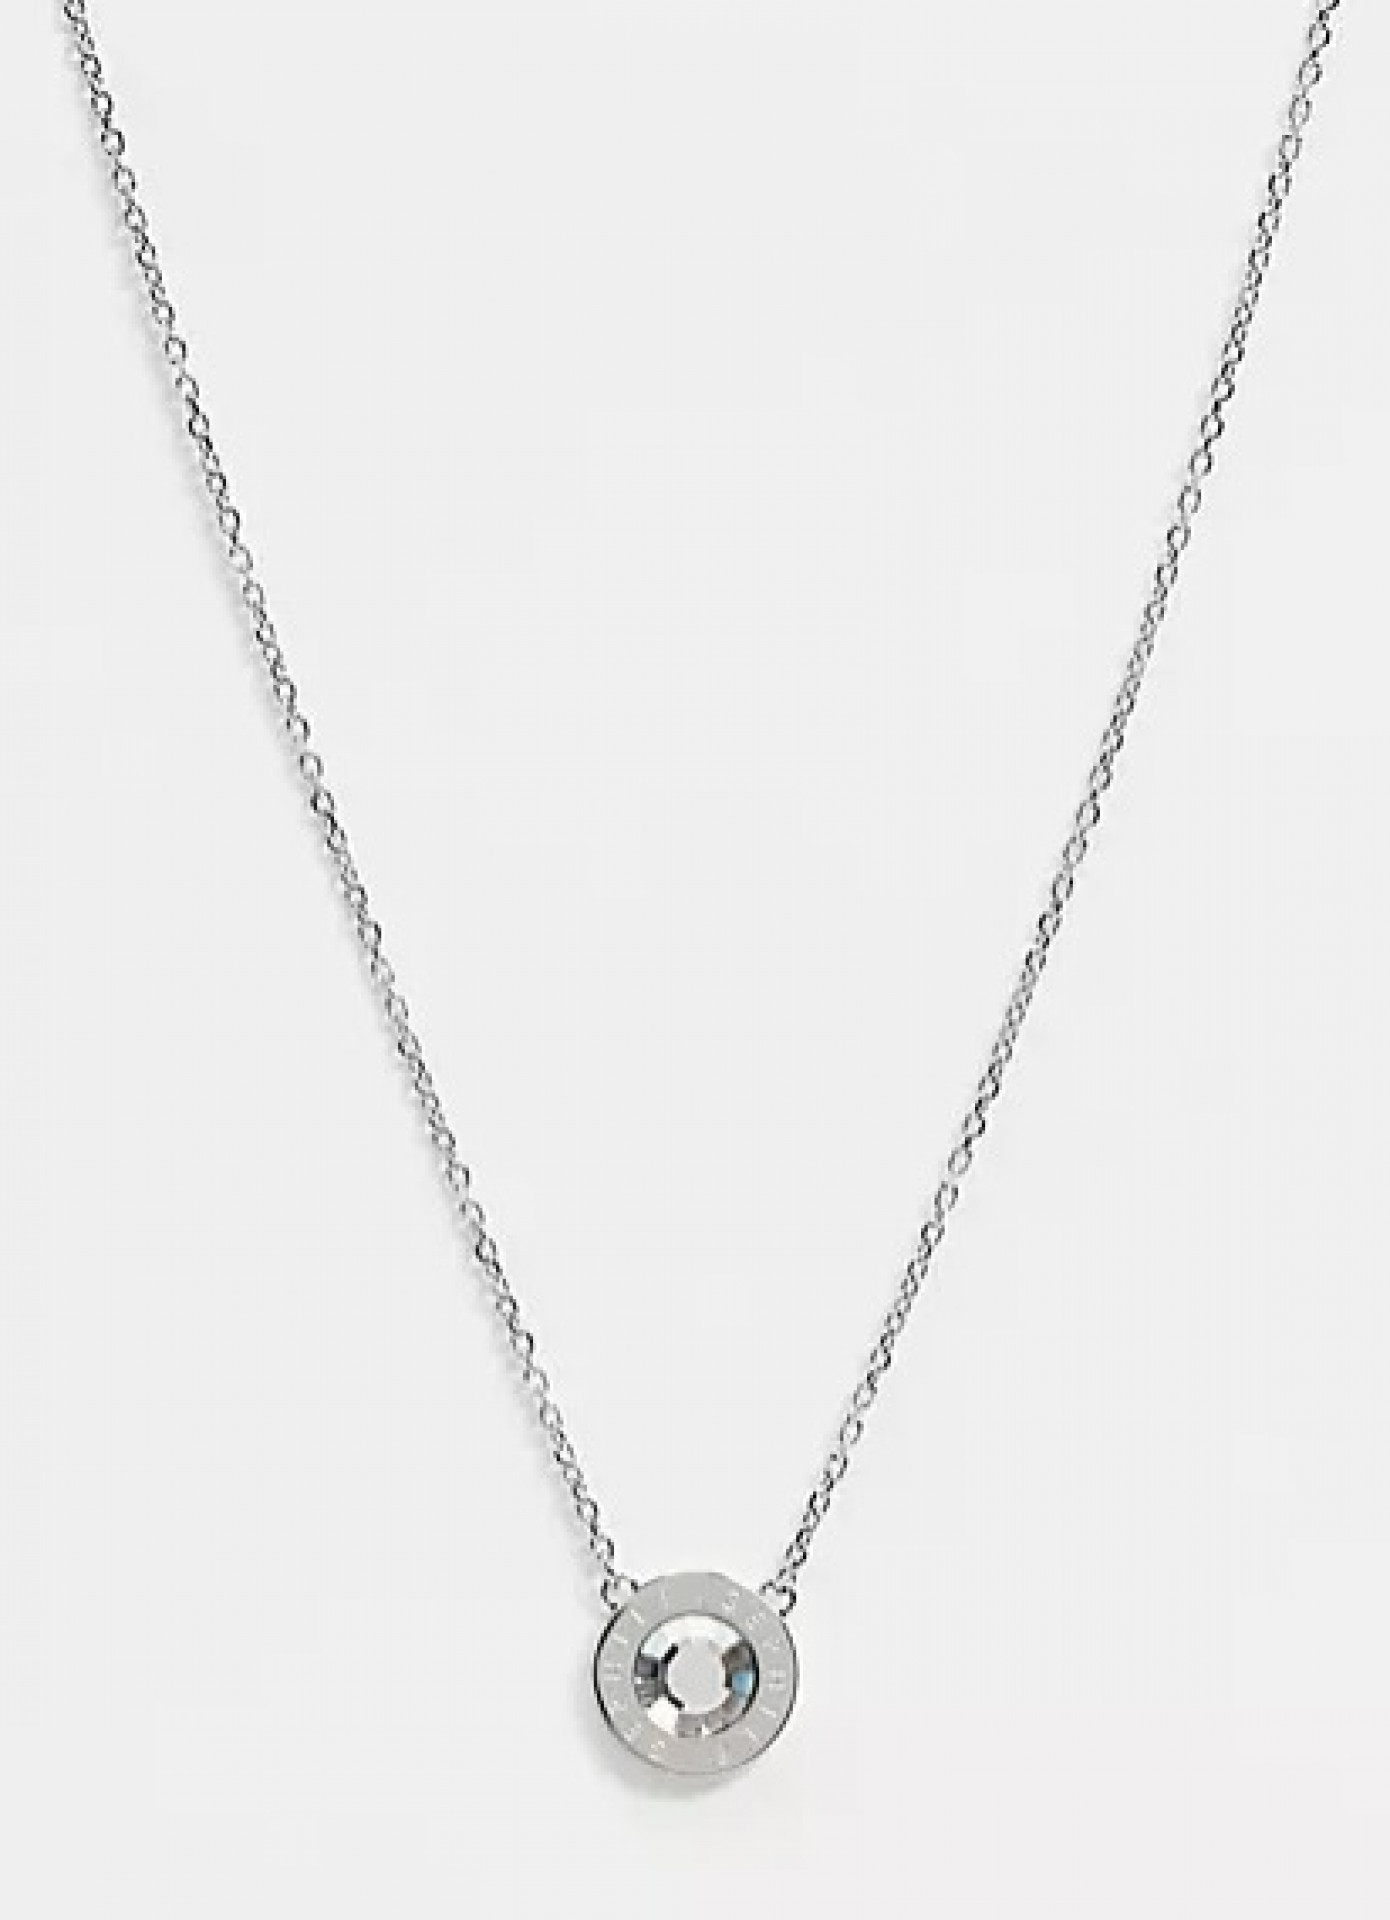 Tommy Hilfiger stud necklace in silver